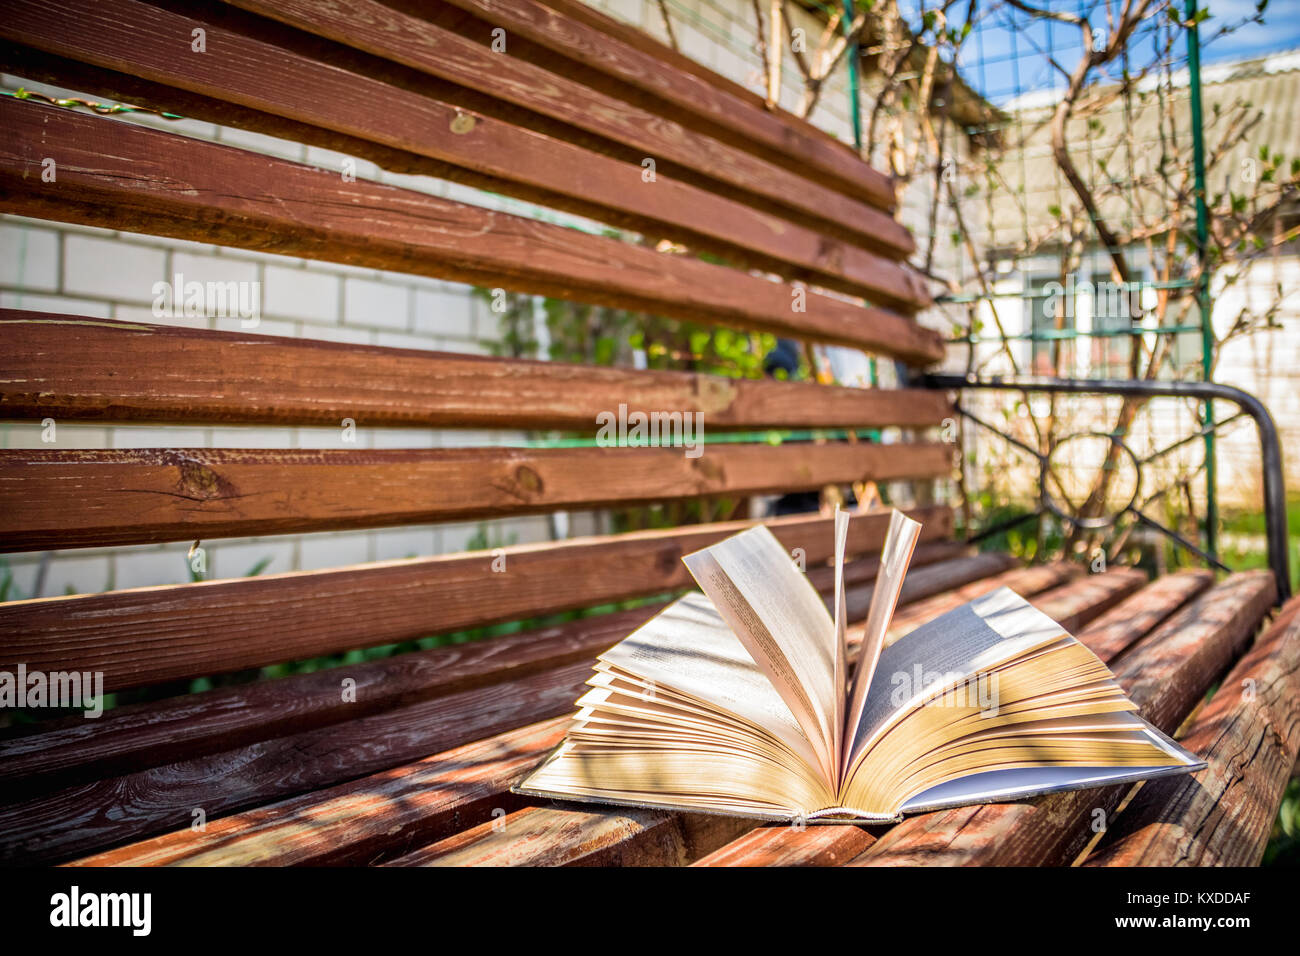 Wooden bench in the yard with her lying on the open book - Stock Image